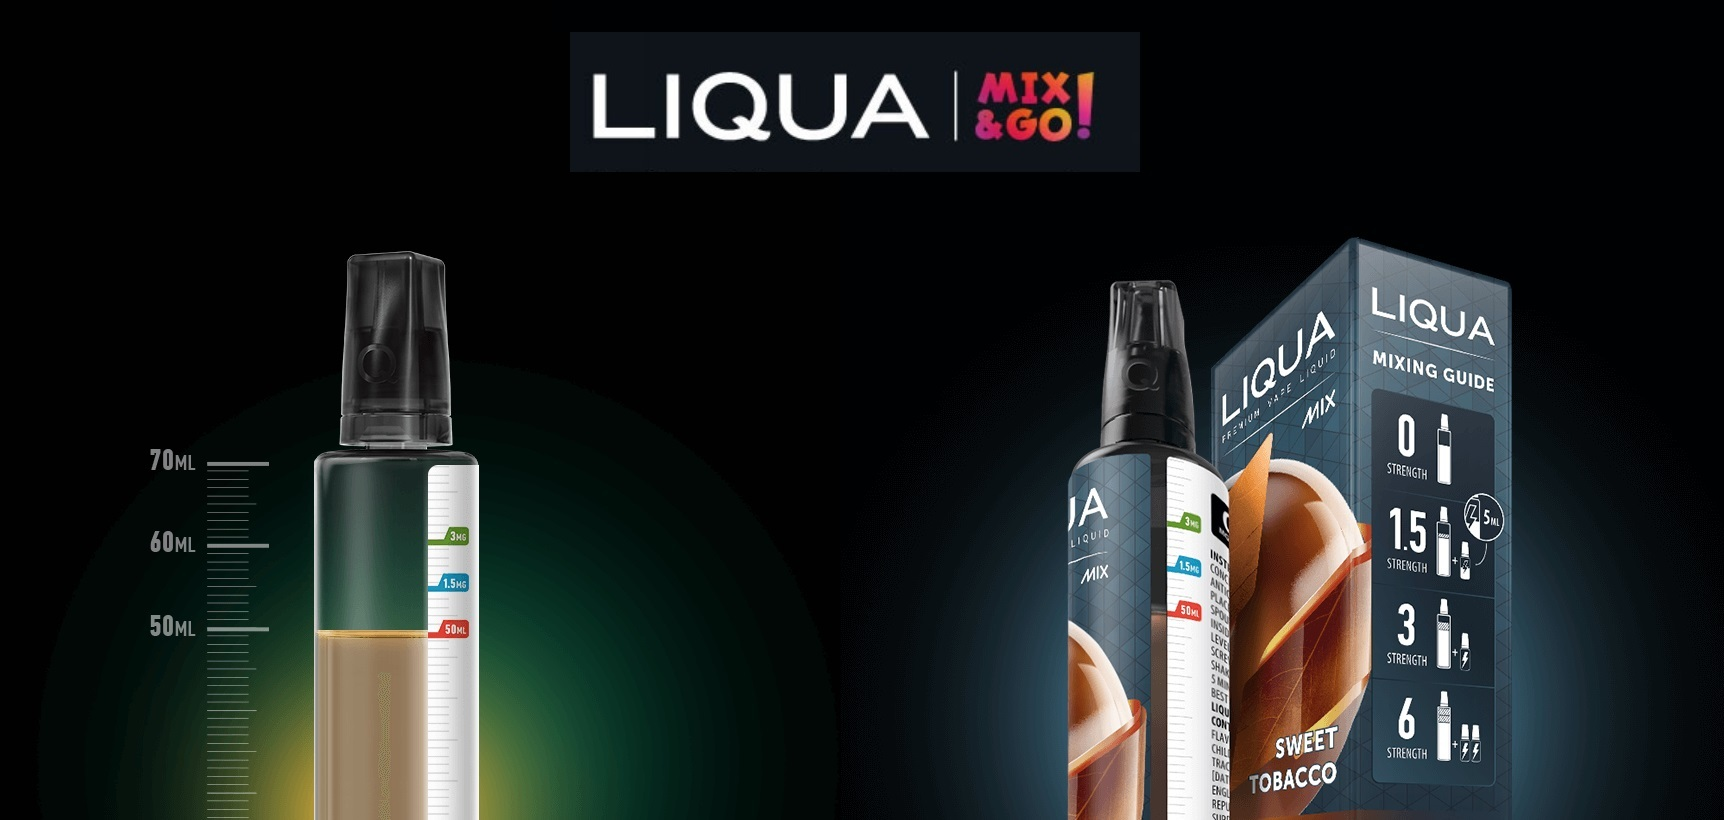 liqua_mix__go_TOTAL